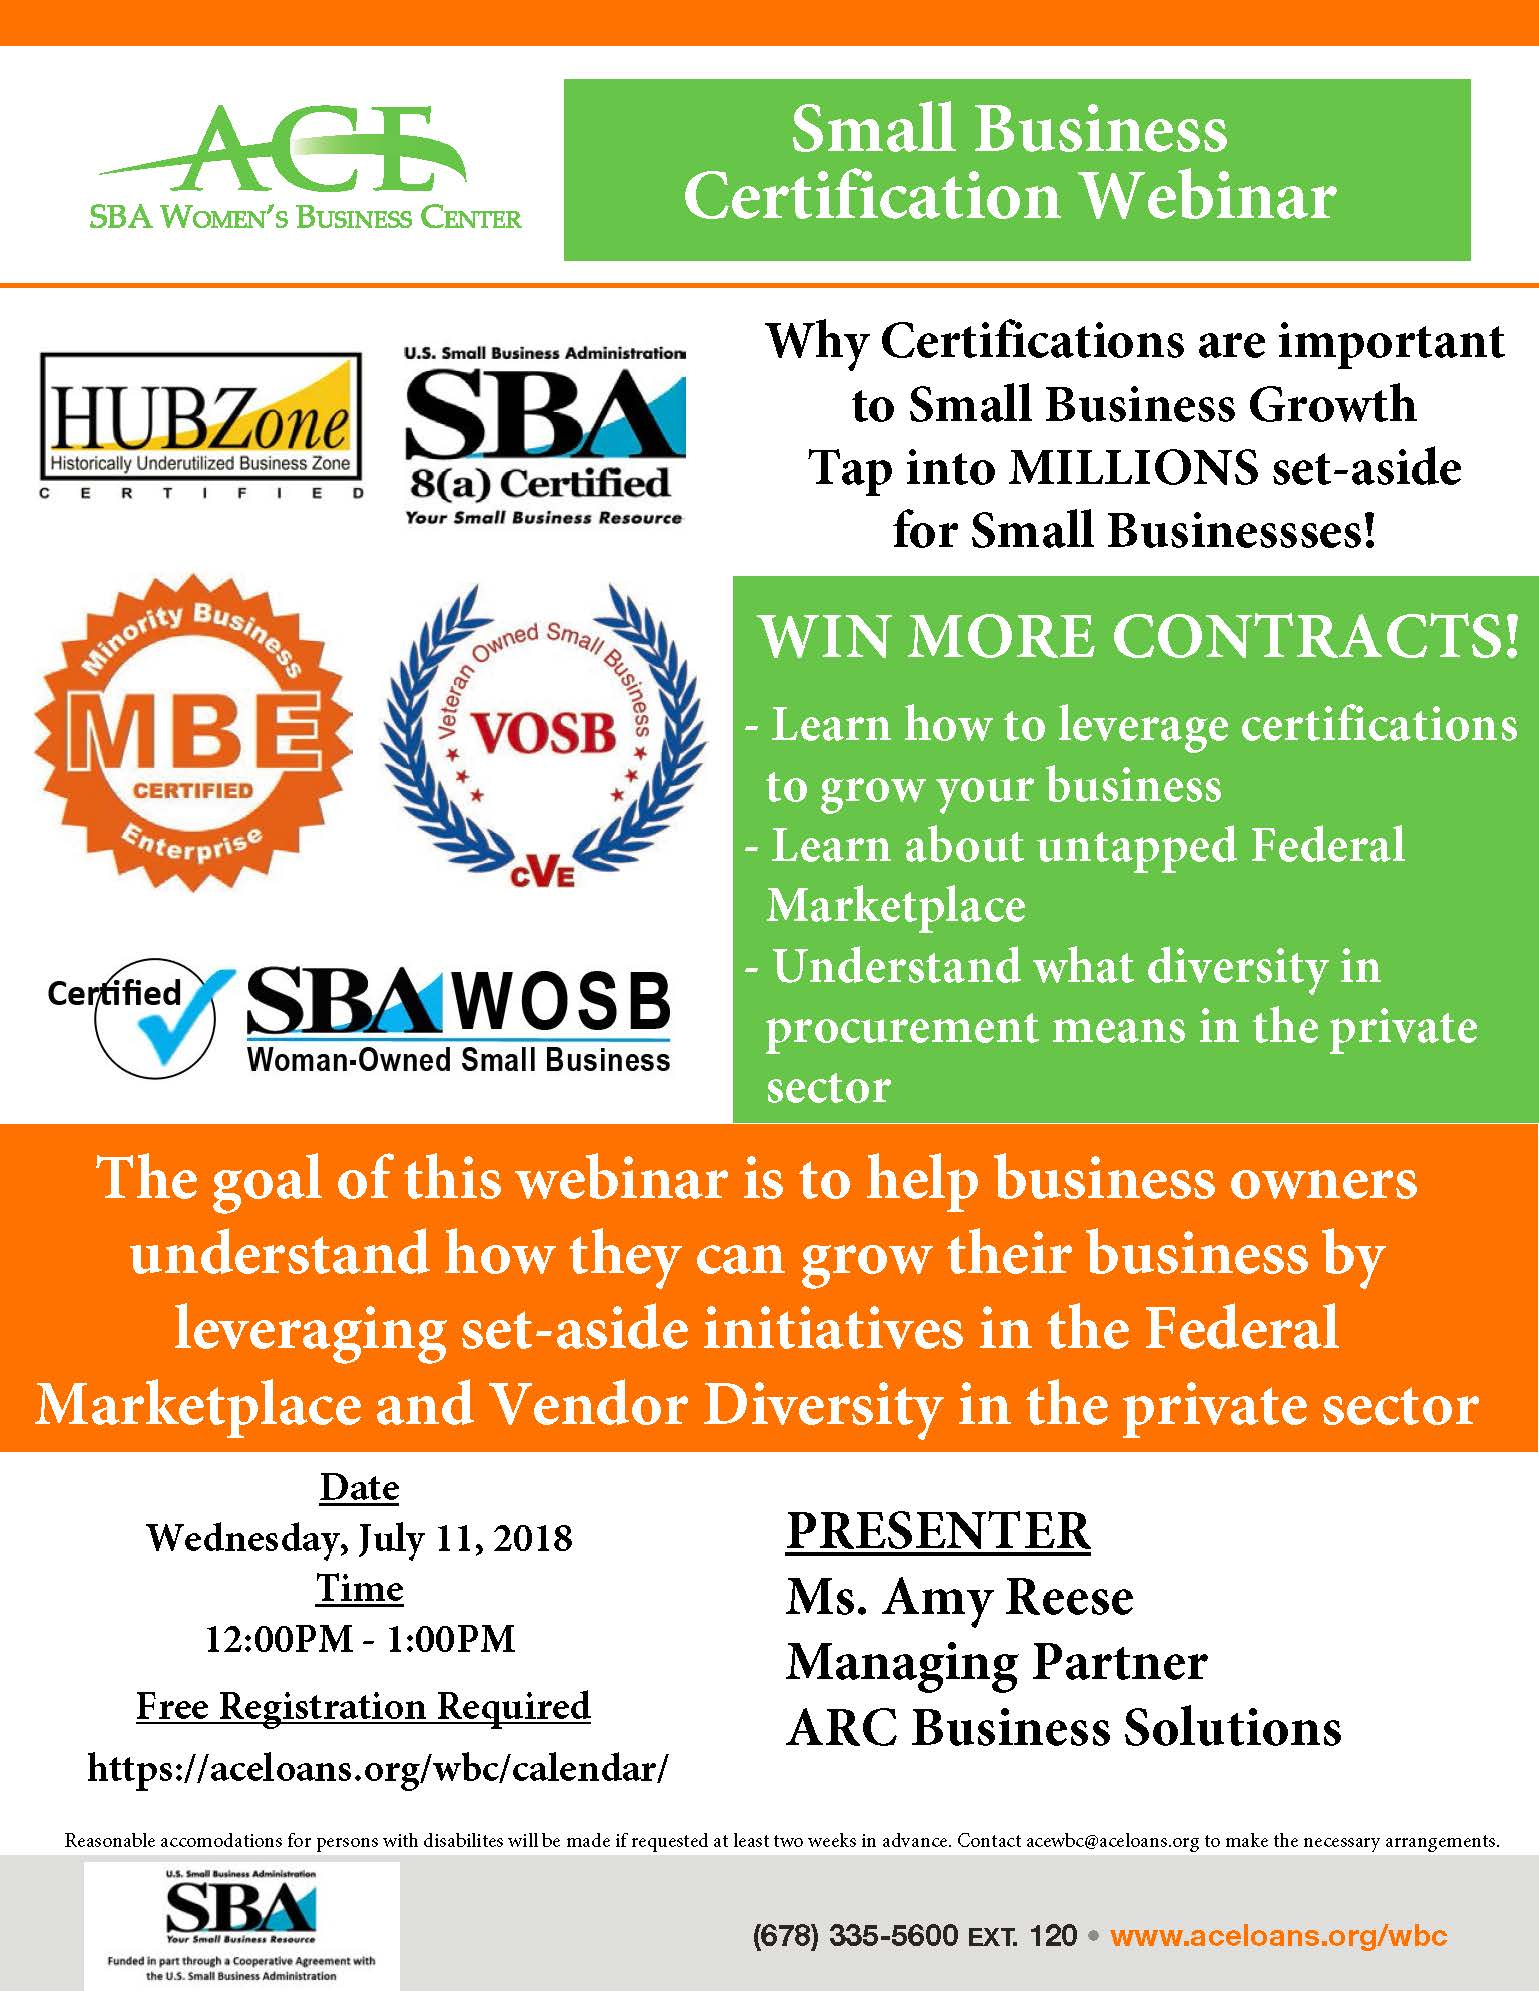 Small Business Certification Webinar | Access to Capital for